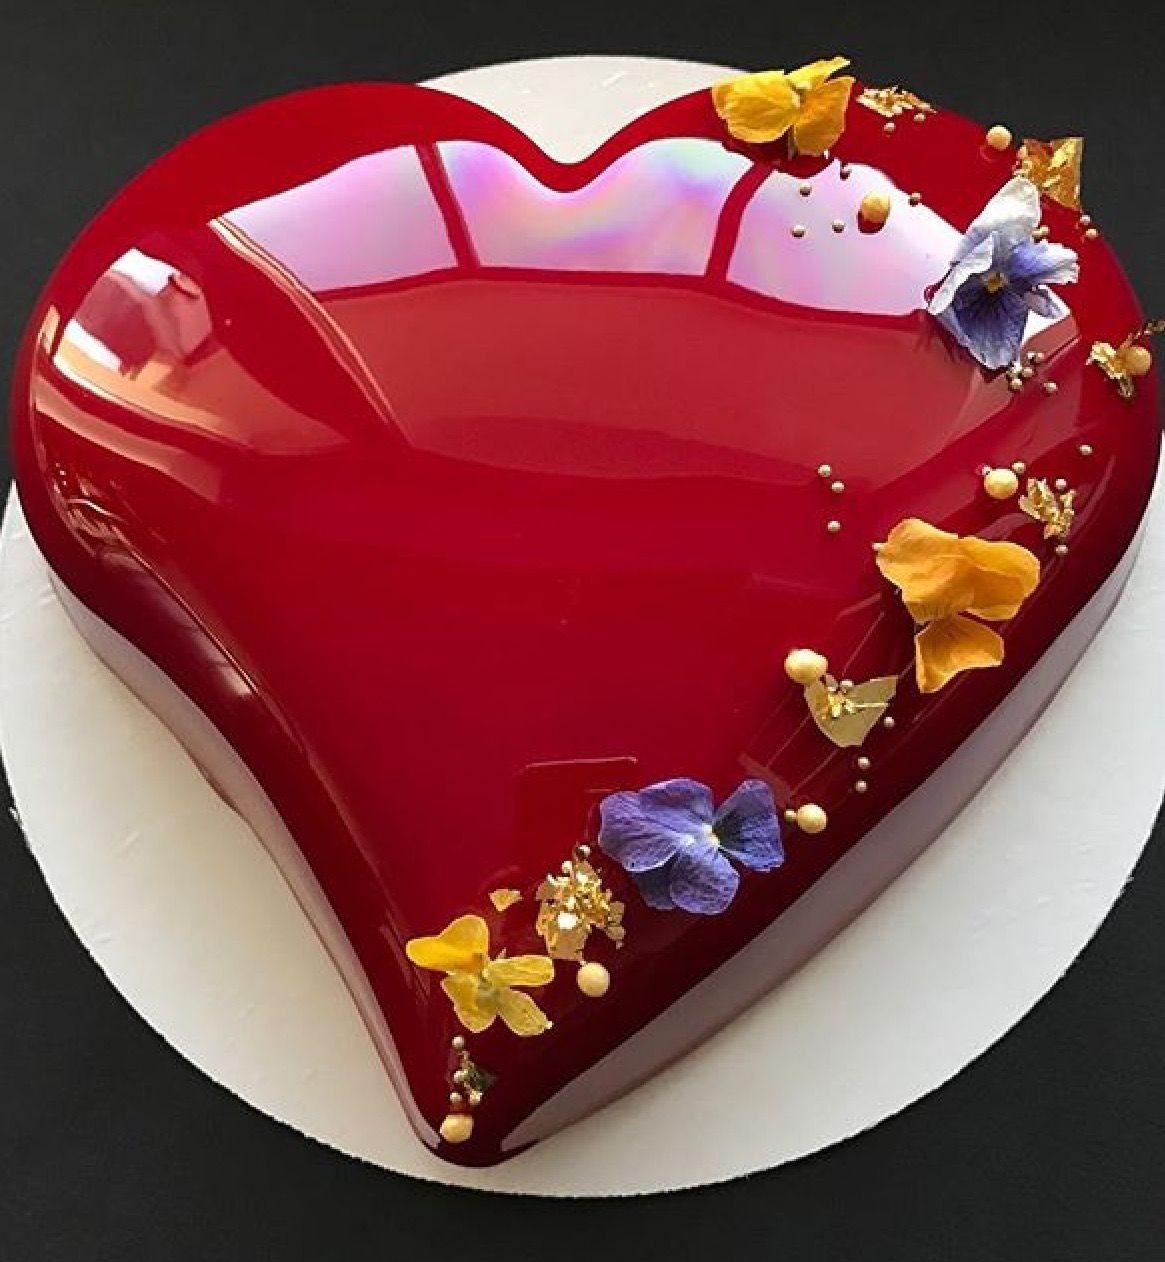 Top 10 Mirror Glaze Cakes Magnificent Mouthfuls Cupcakes